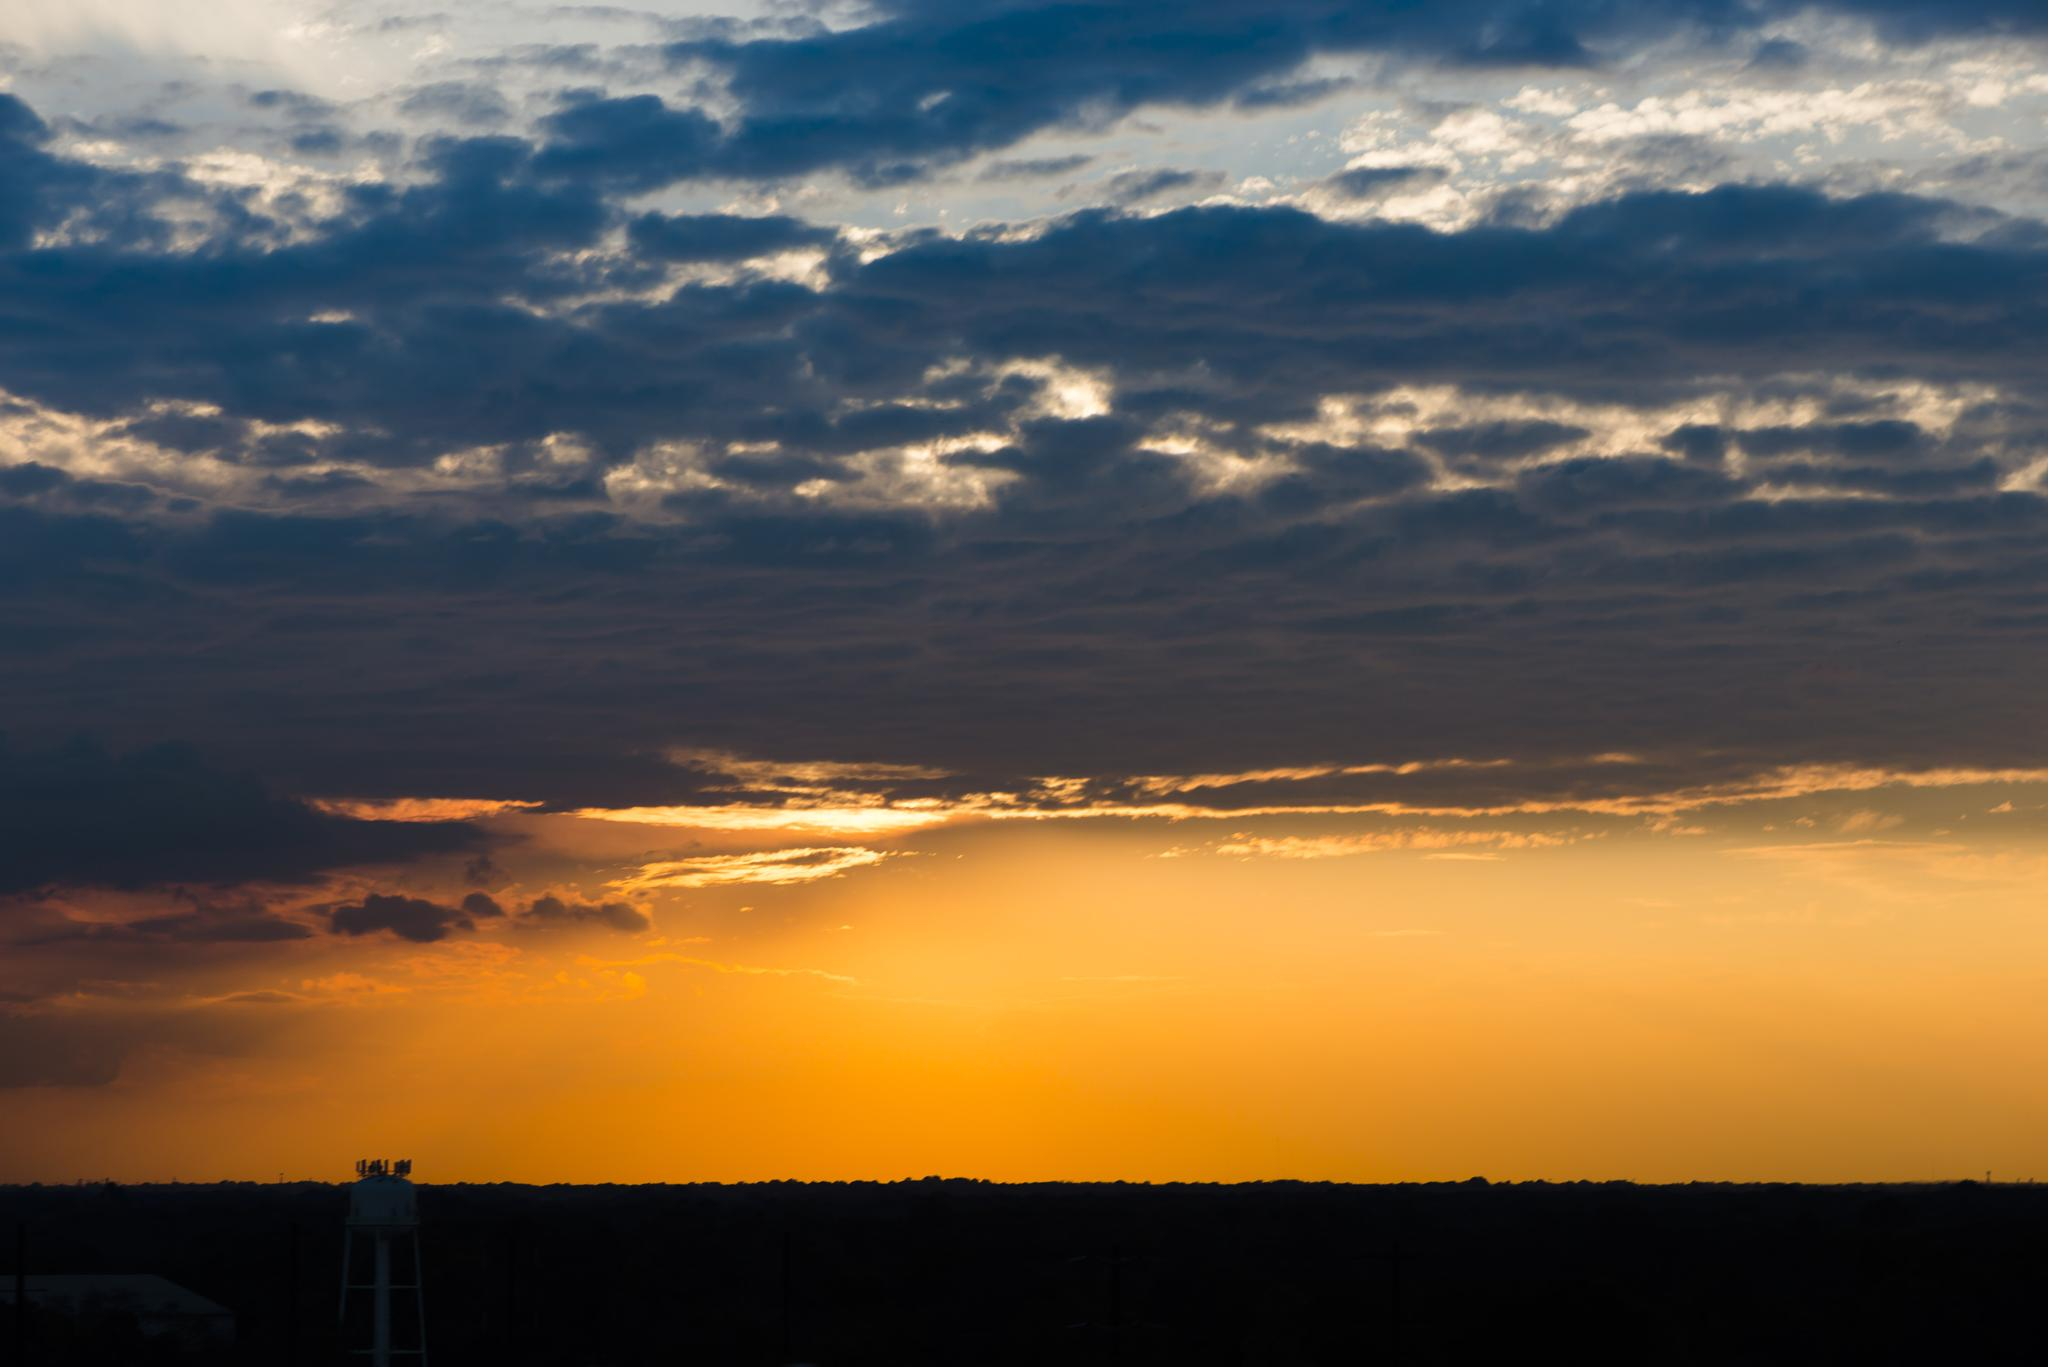 Sunset over Philly by Second-Glimpse Photography